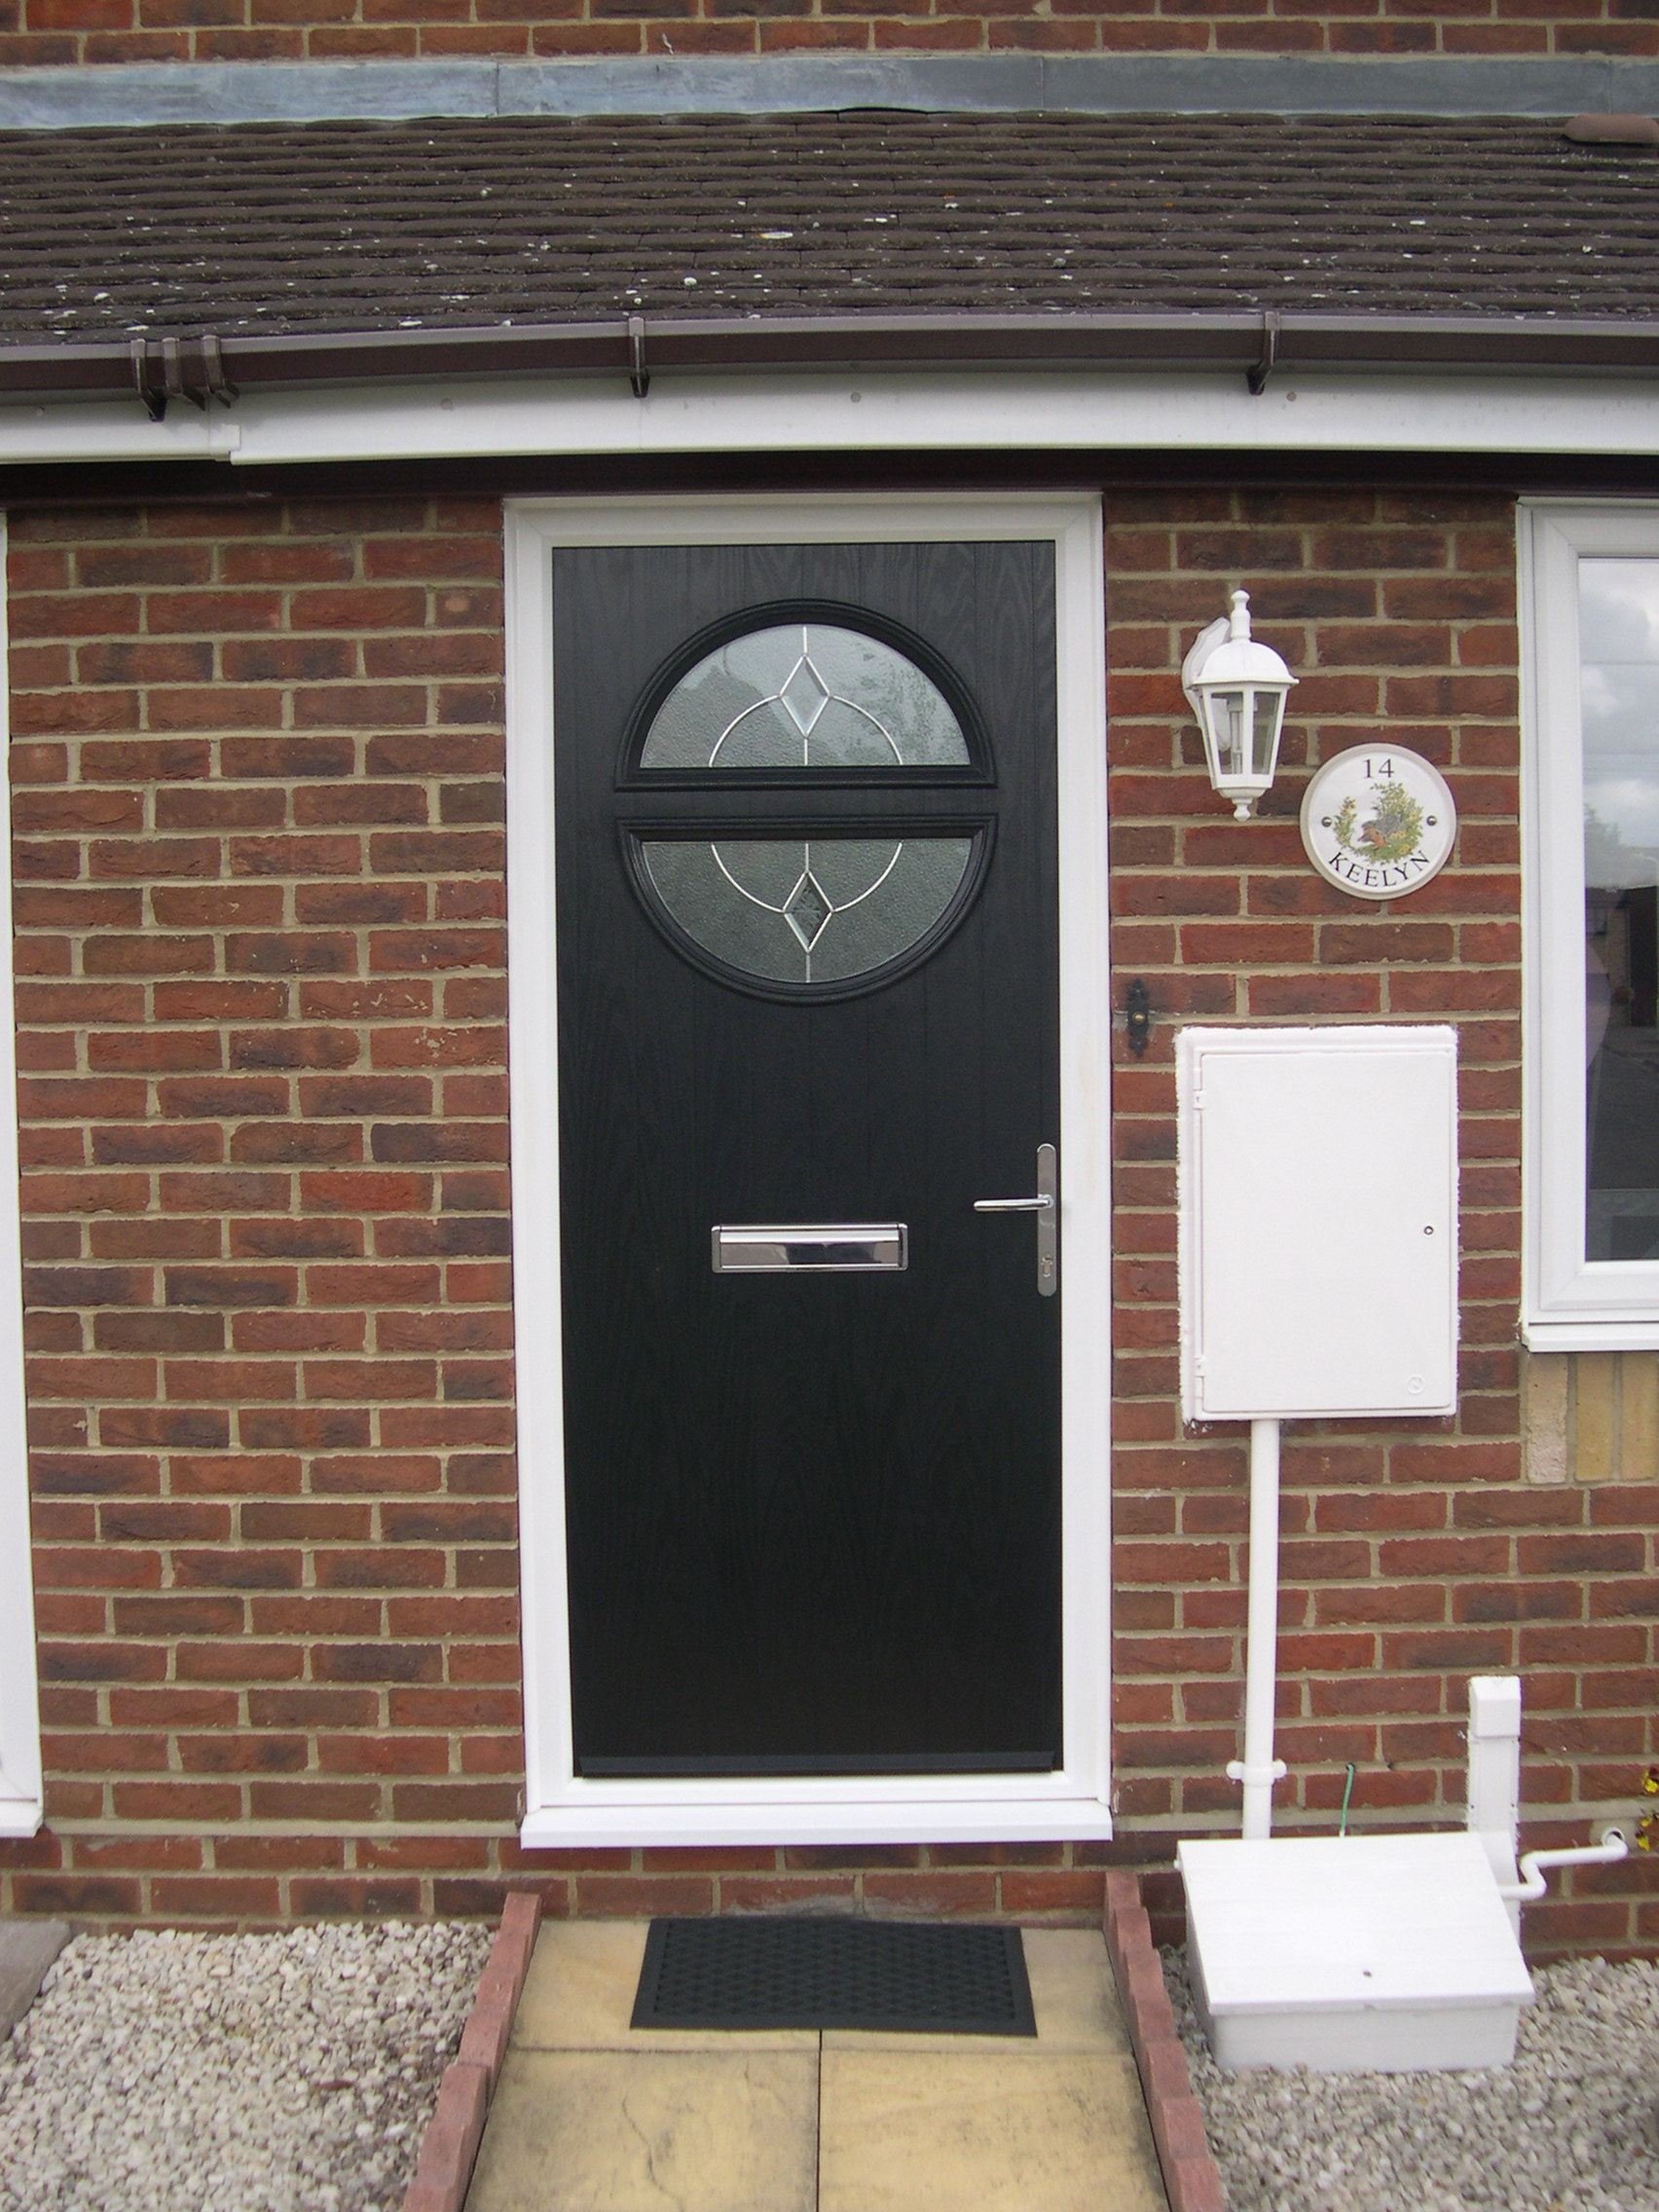 Composite doors jcs external solutions for Composite windows